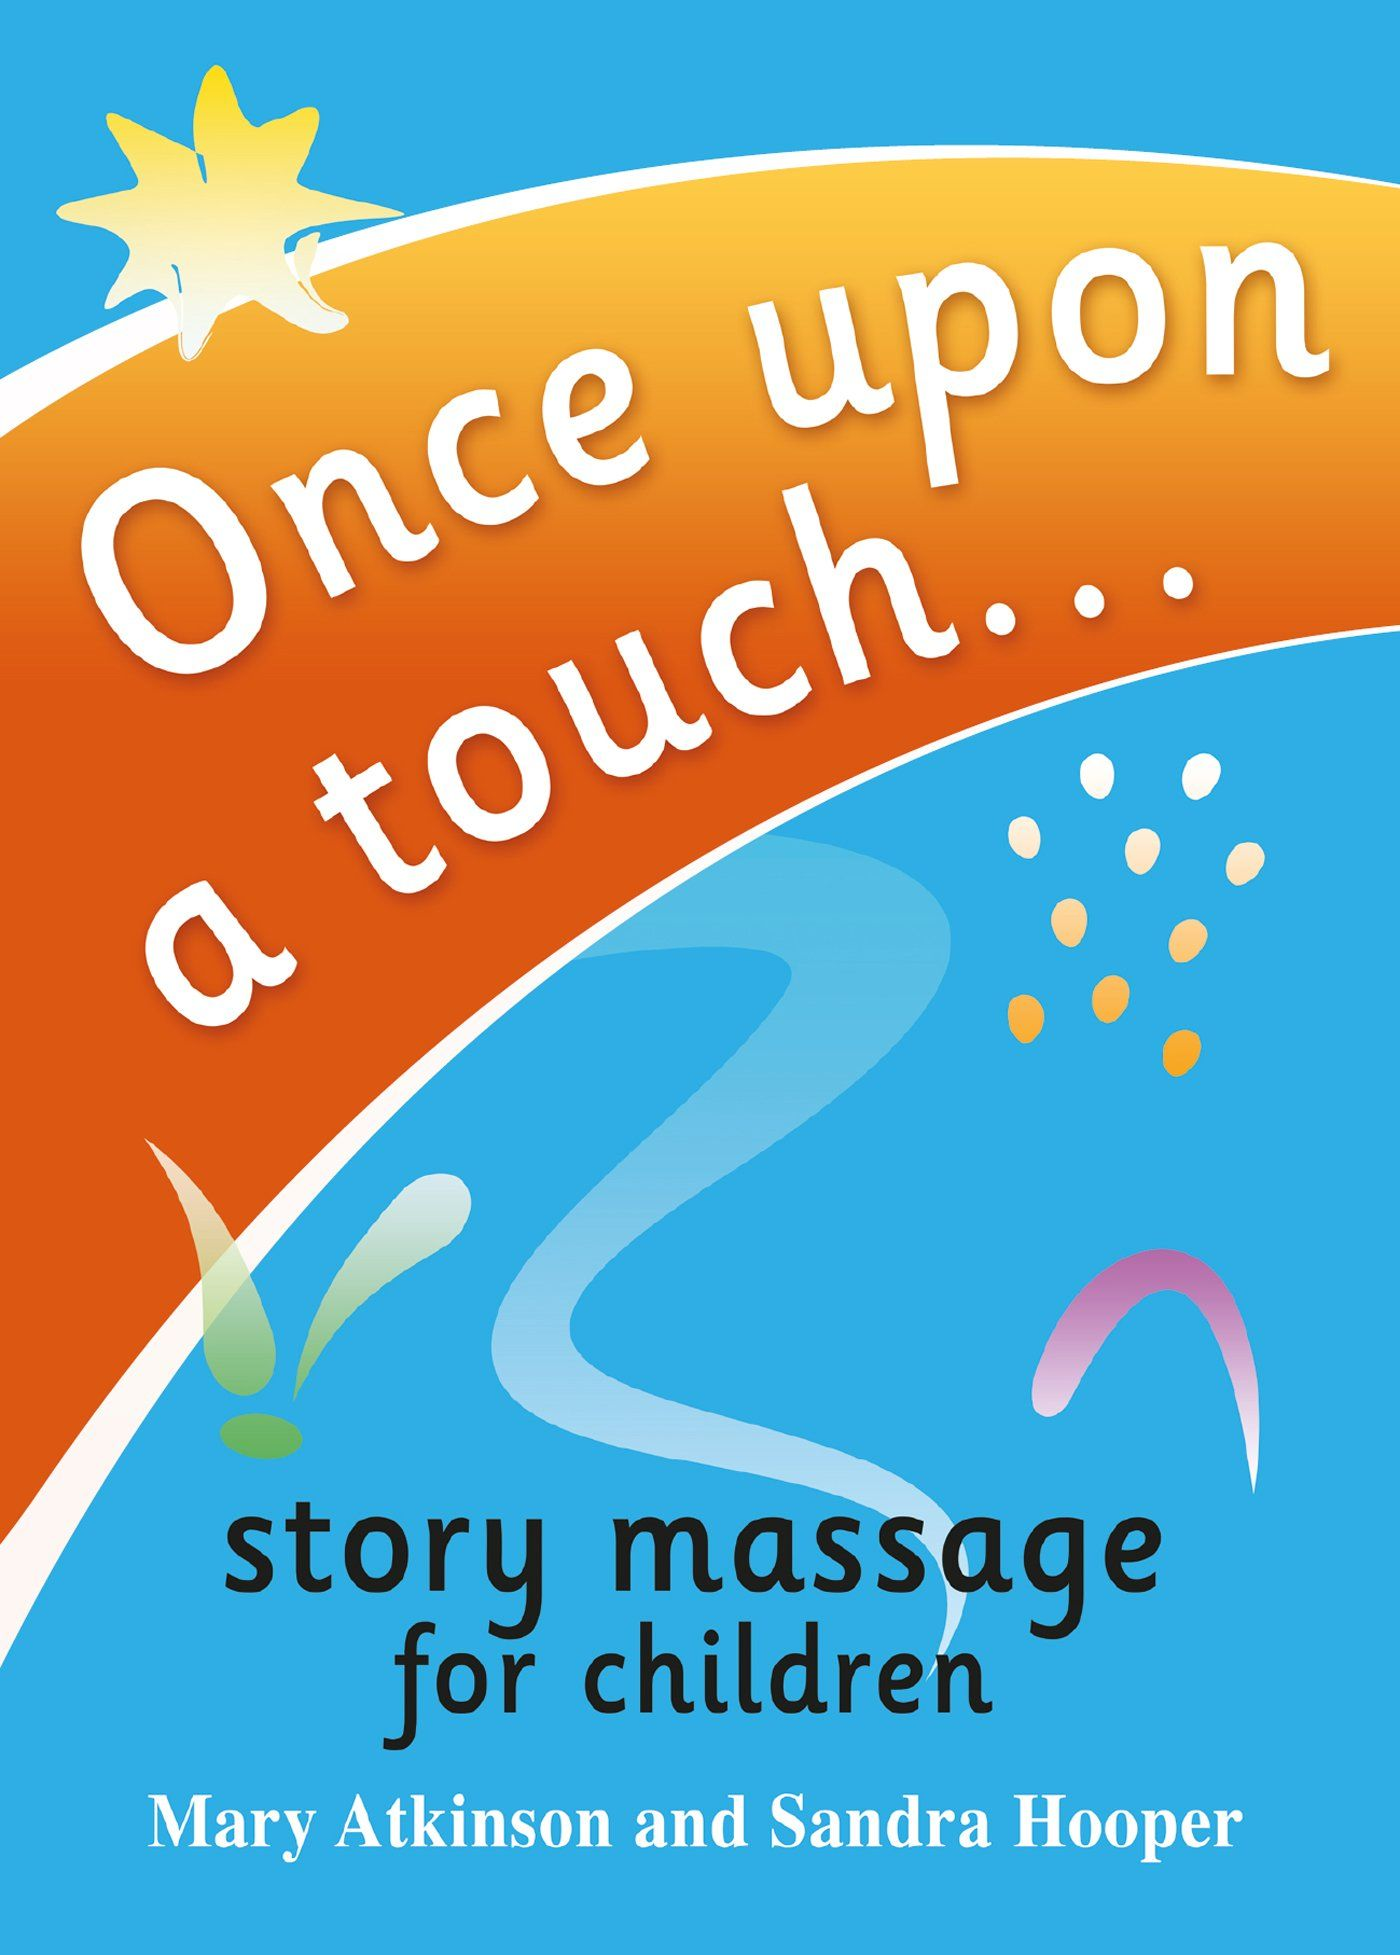 How Mindfulness And Storytelling Help >> Once Upon A Touch Story Massage For Children Amazon Co Uk Kindle